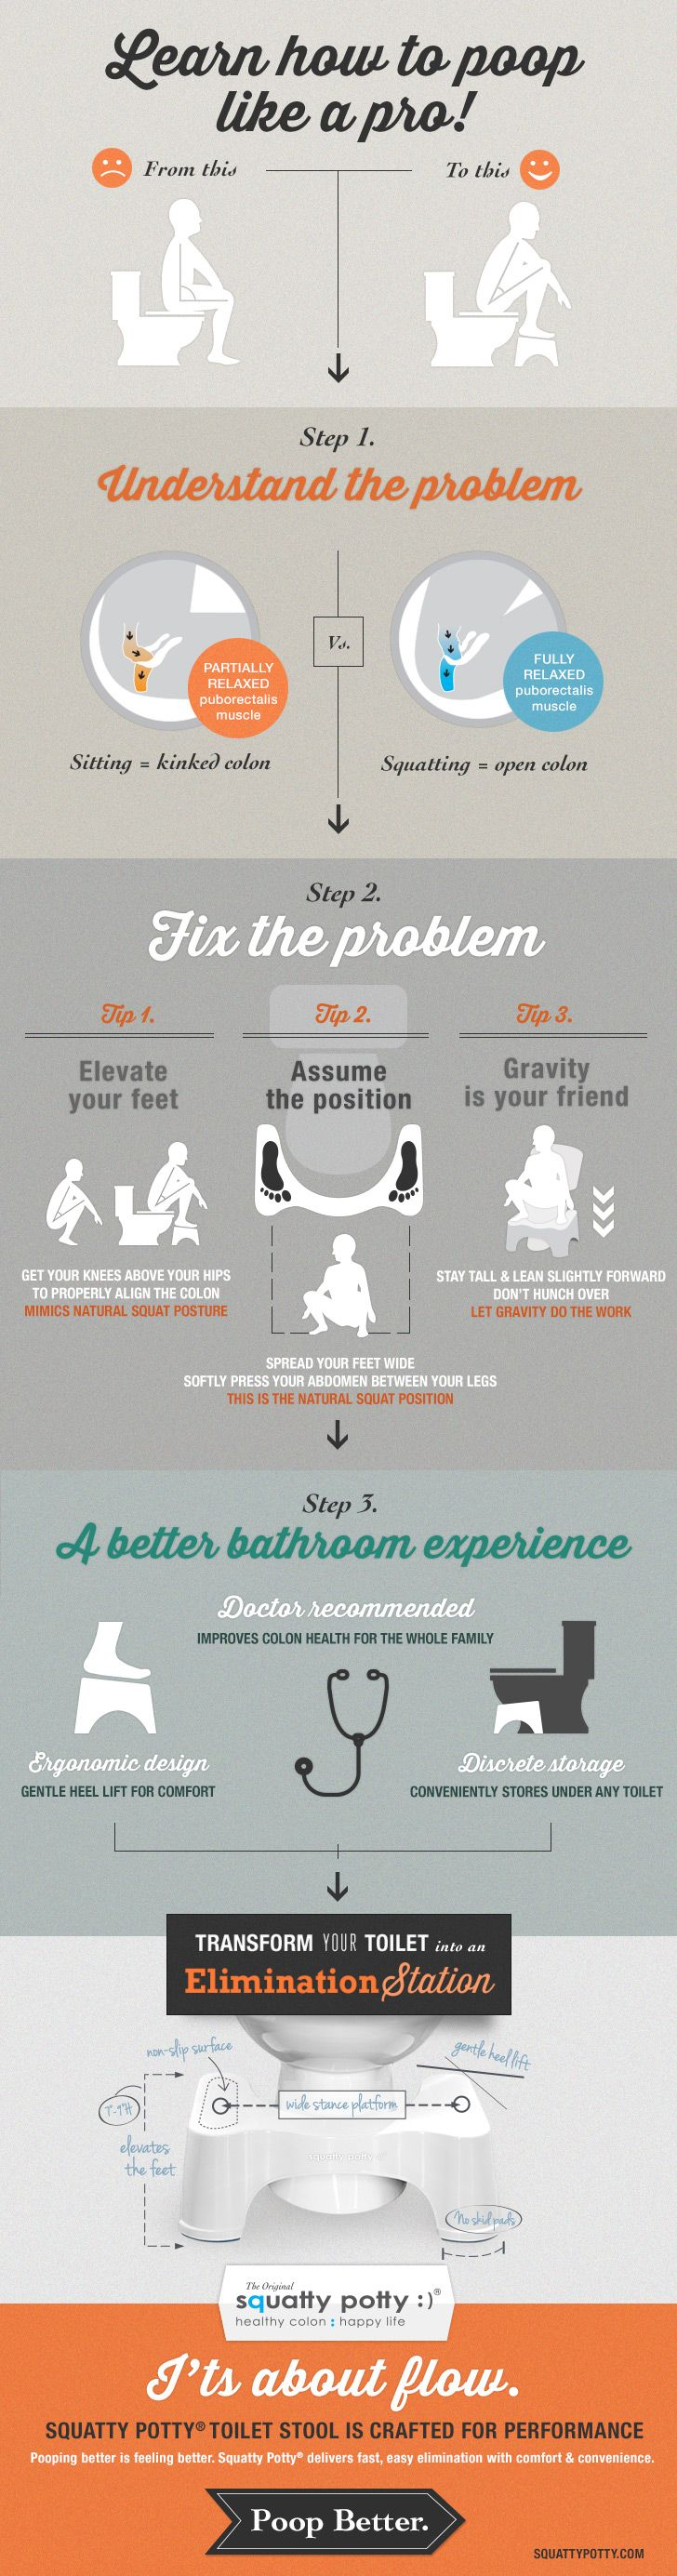 Learn how to Poop like a Pro!  | Squatty Potty® Blog squattypottyblog.com | #squattypotty squattypotty.com